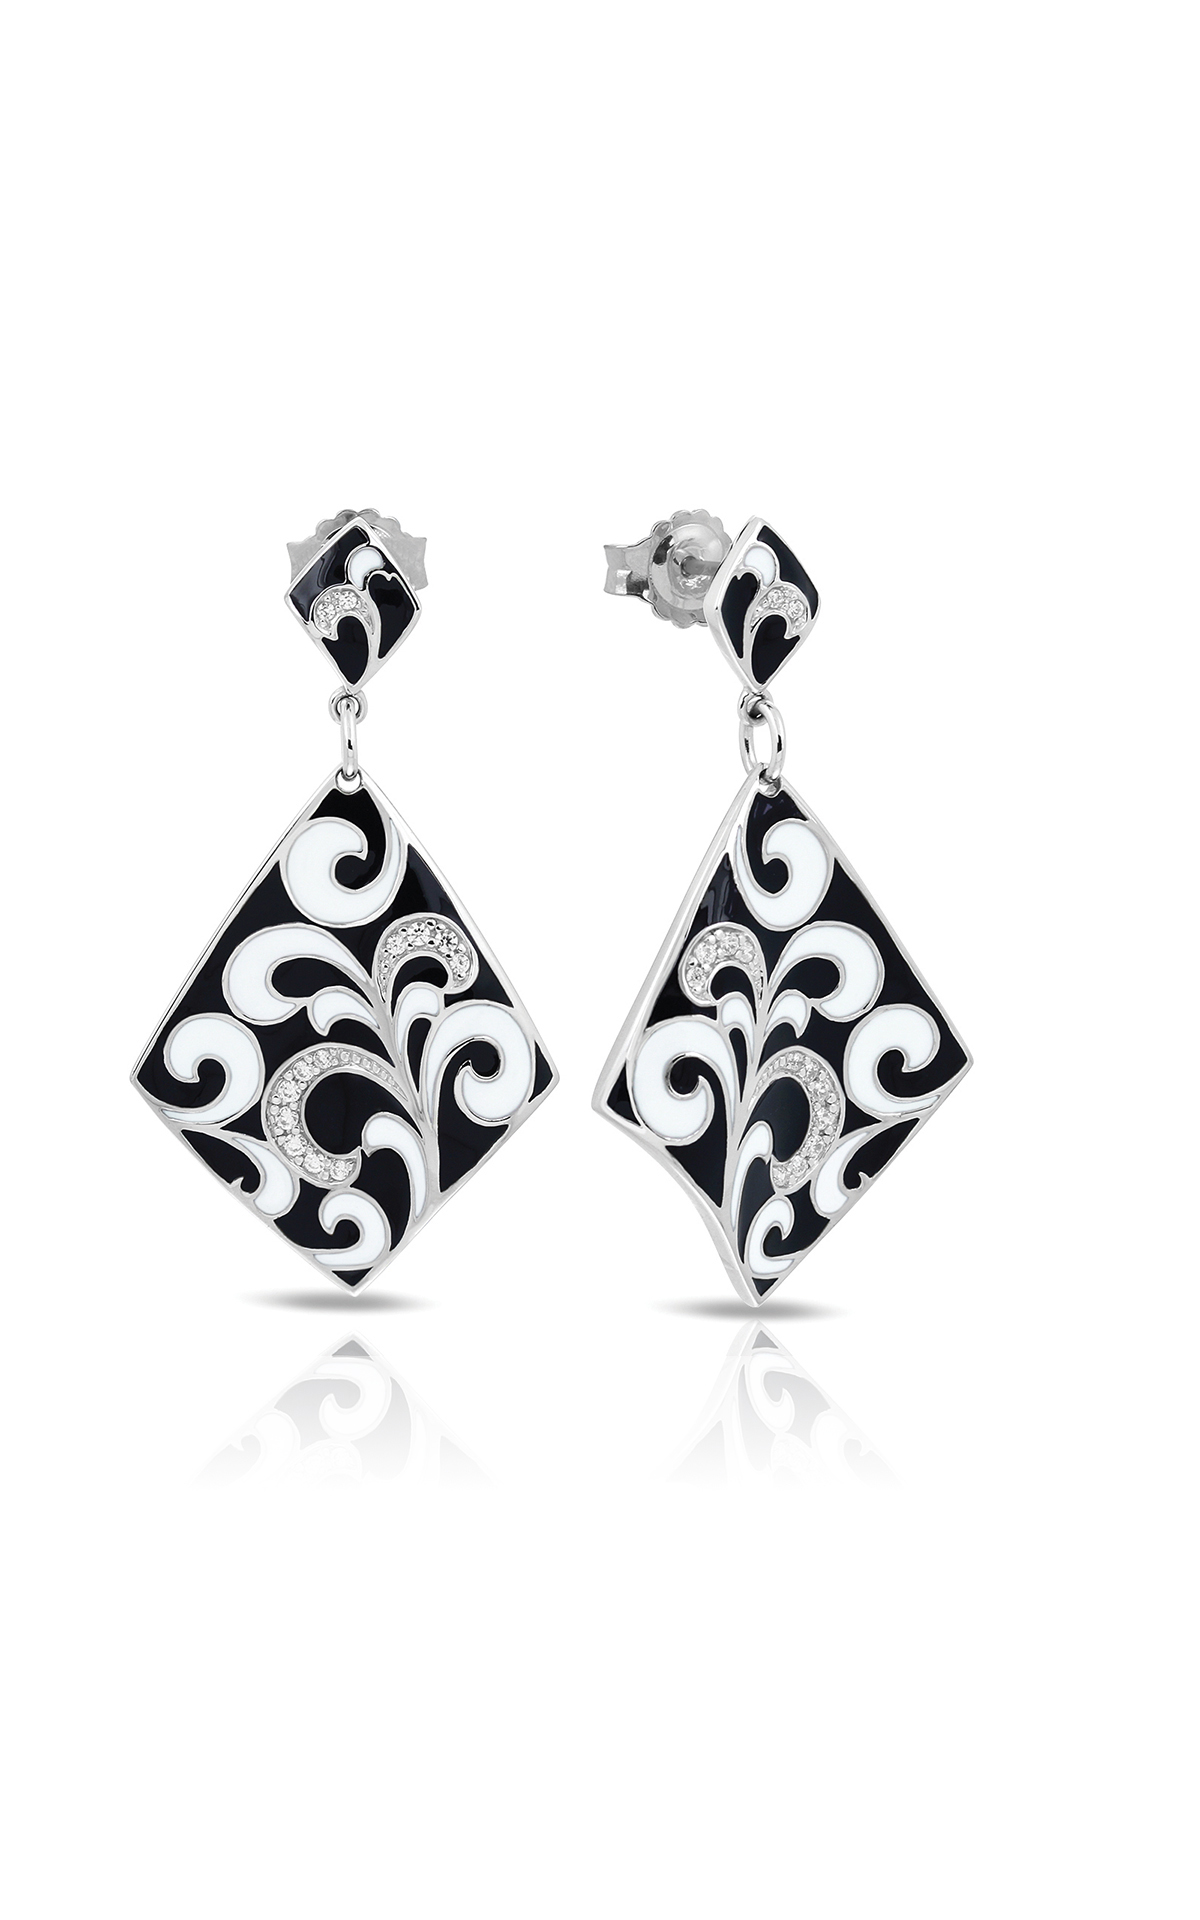 Belle Etoile Contessa Black Earrings 3021610301 product image